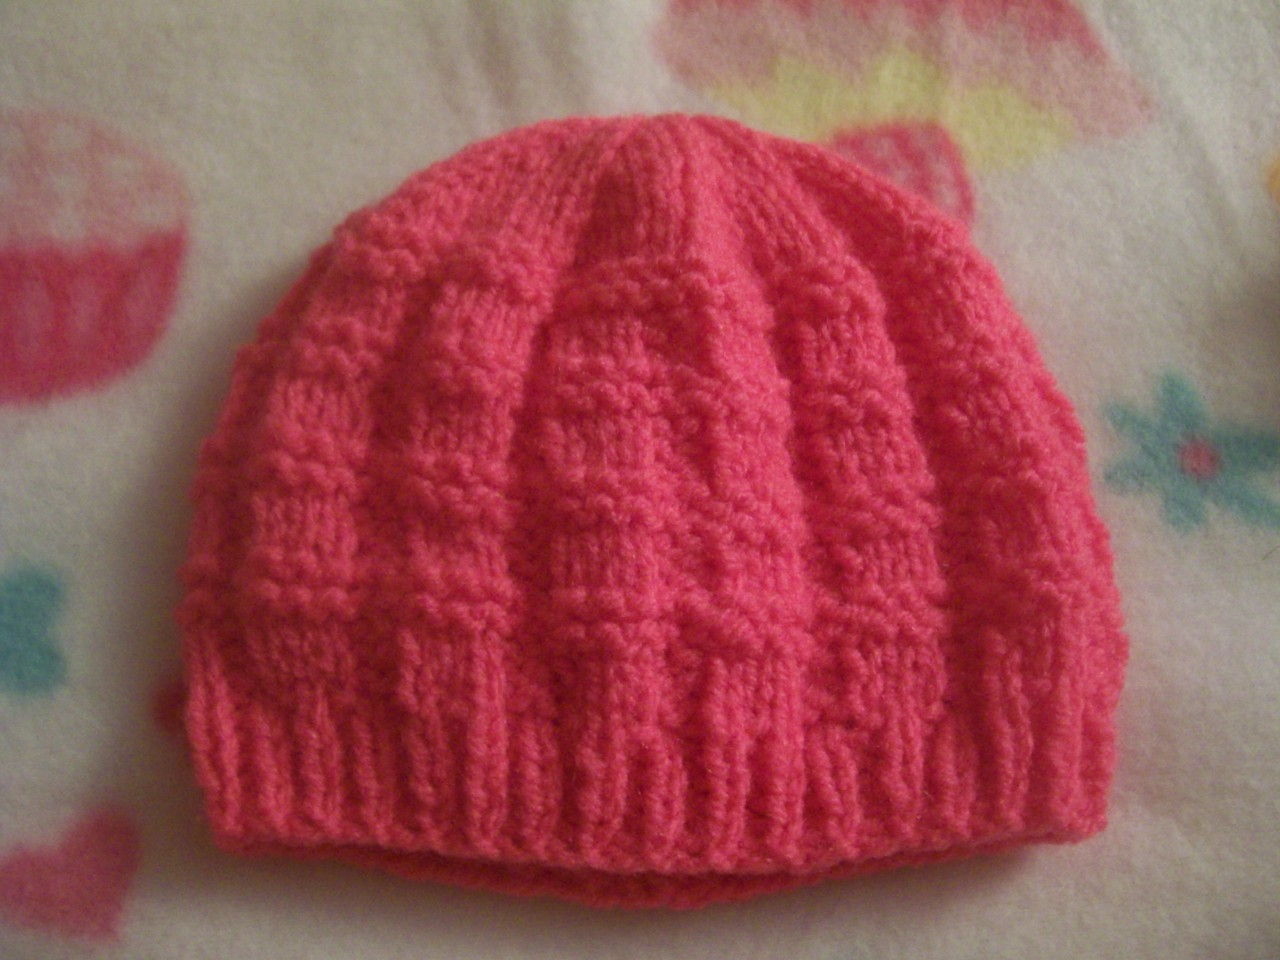 Hand Knitted Hat Patterns : Newborn Girls/Boys Basketweave Pattern Hand Knitted Baby Beanie Hat eBay